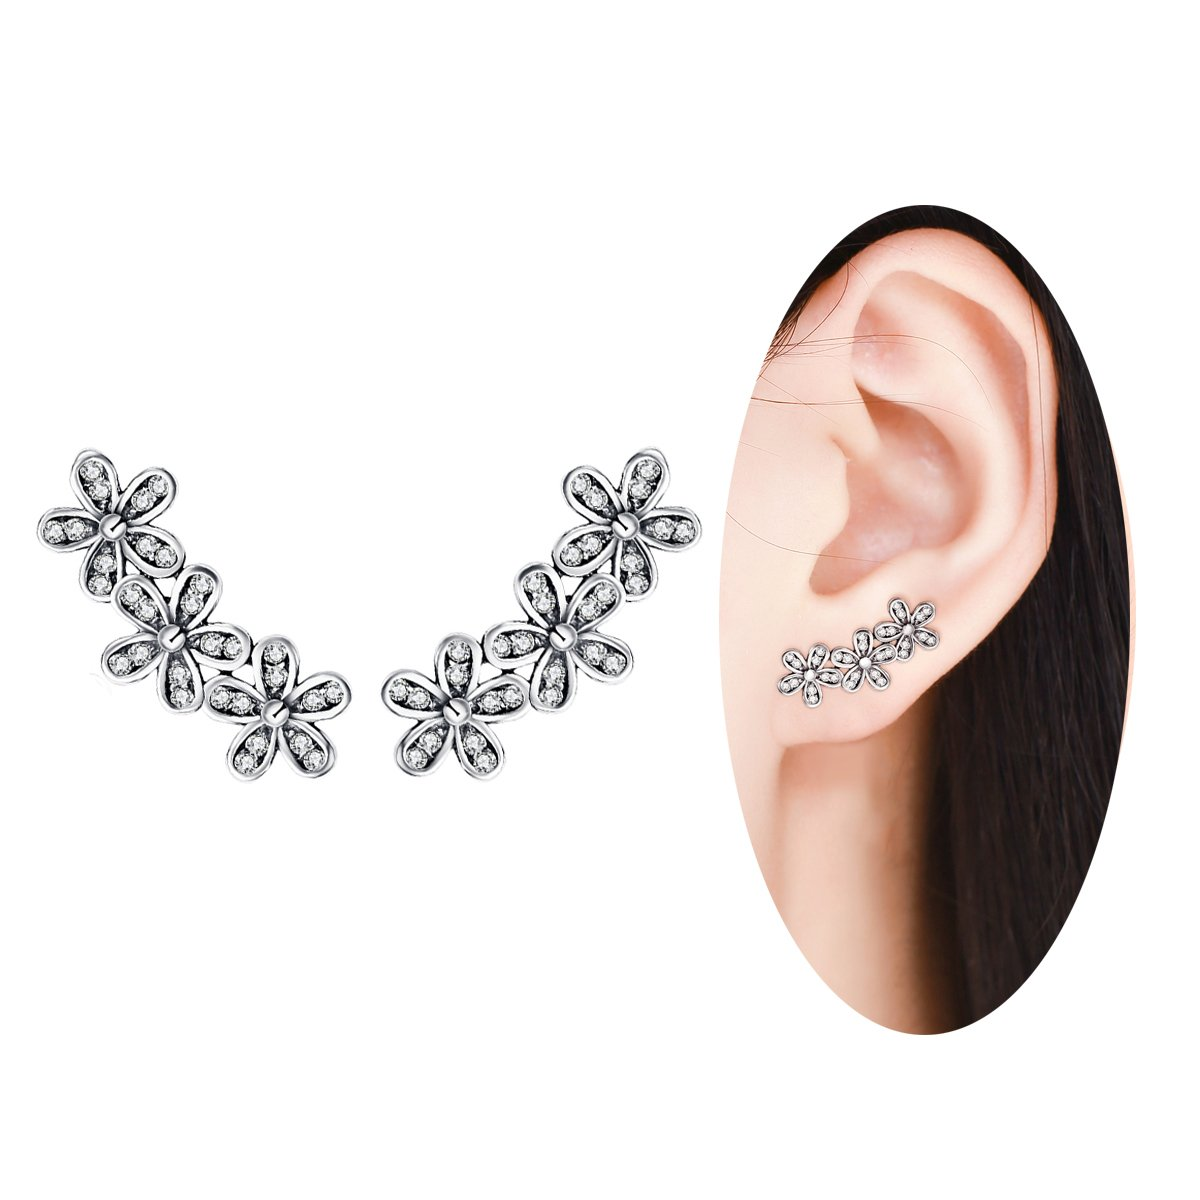 BAMOER New Arrival 925 Sterling Silver Antique Black Daisy Flowers Crawler Earrings for Women Teen Girls Thanksgiving Christmas Day Gifts (Daisy Flowers)